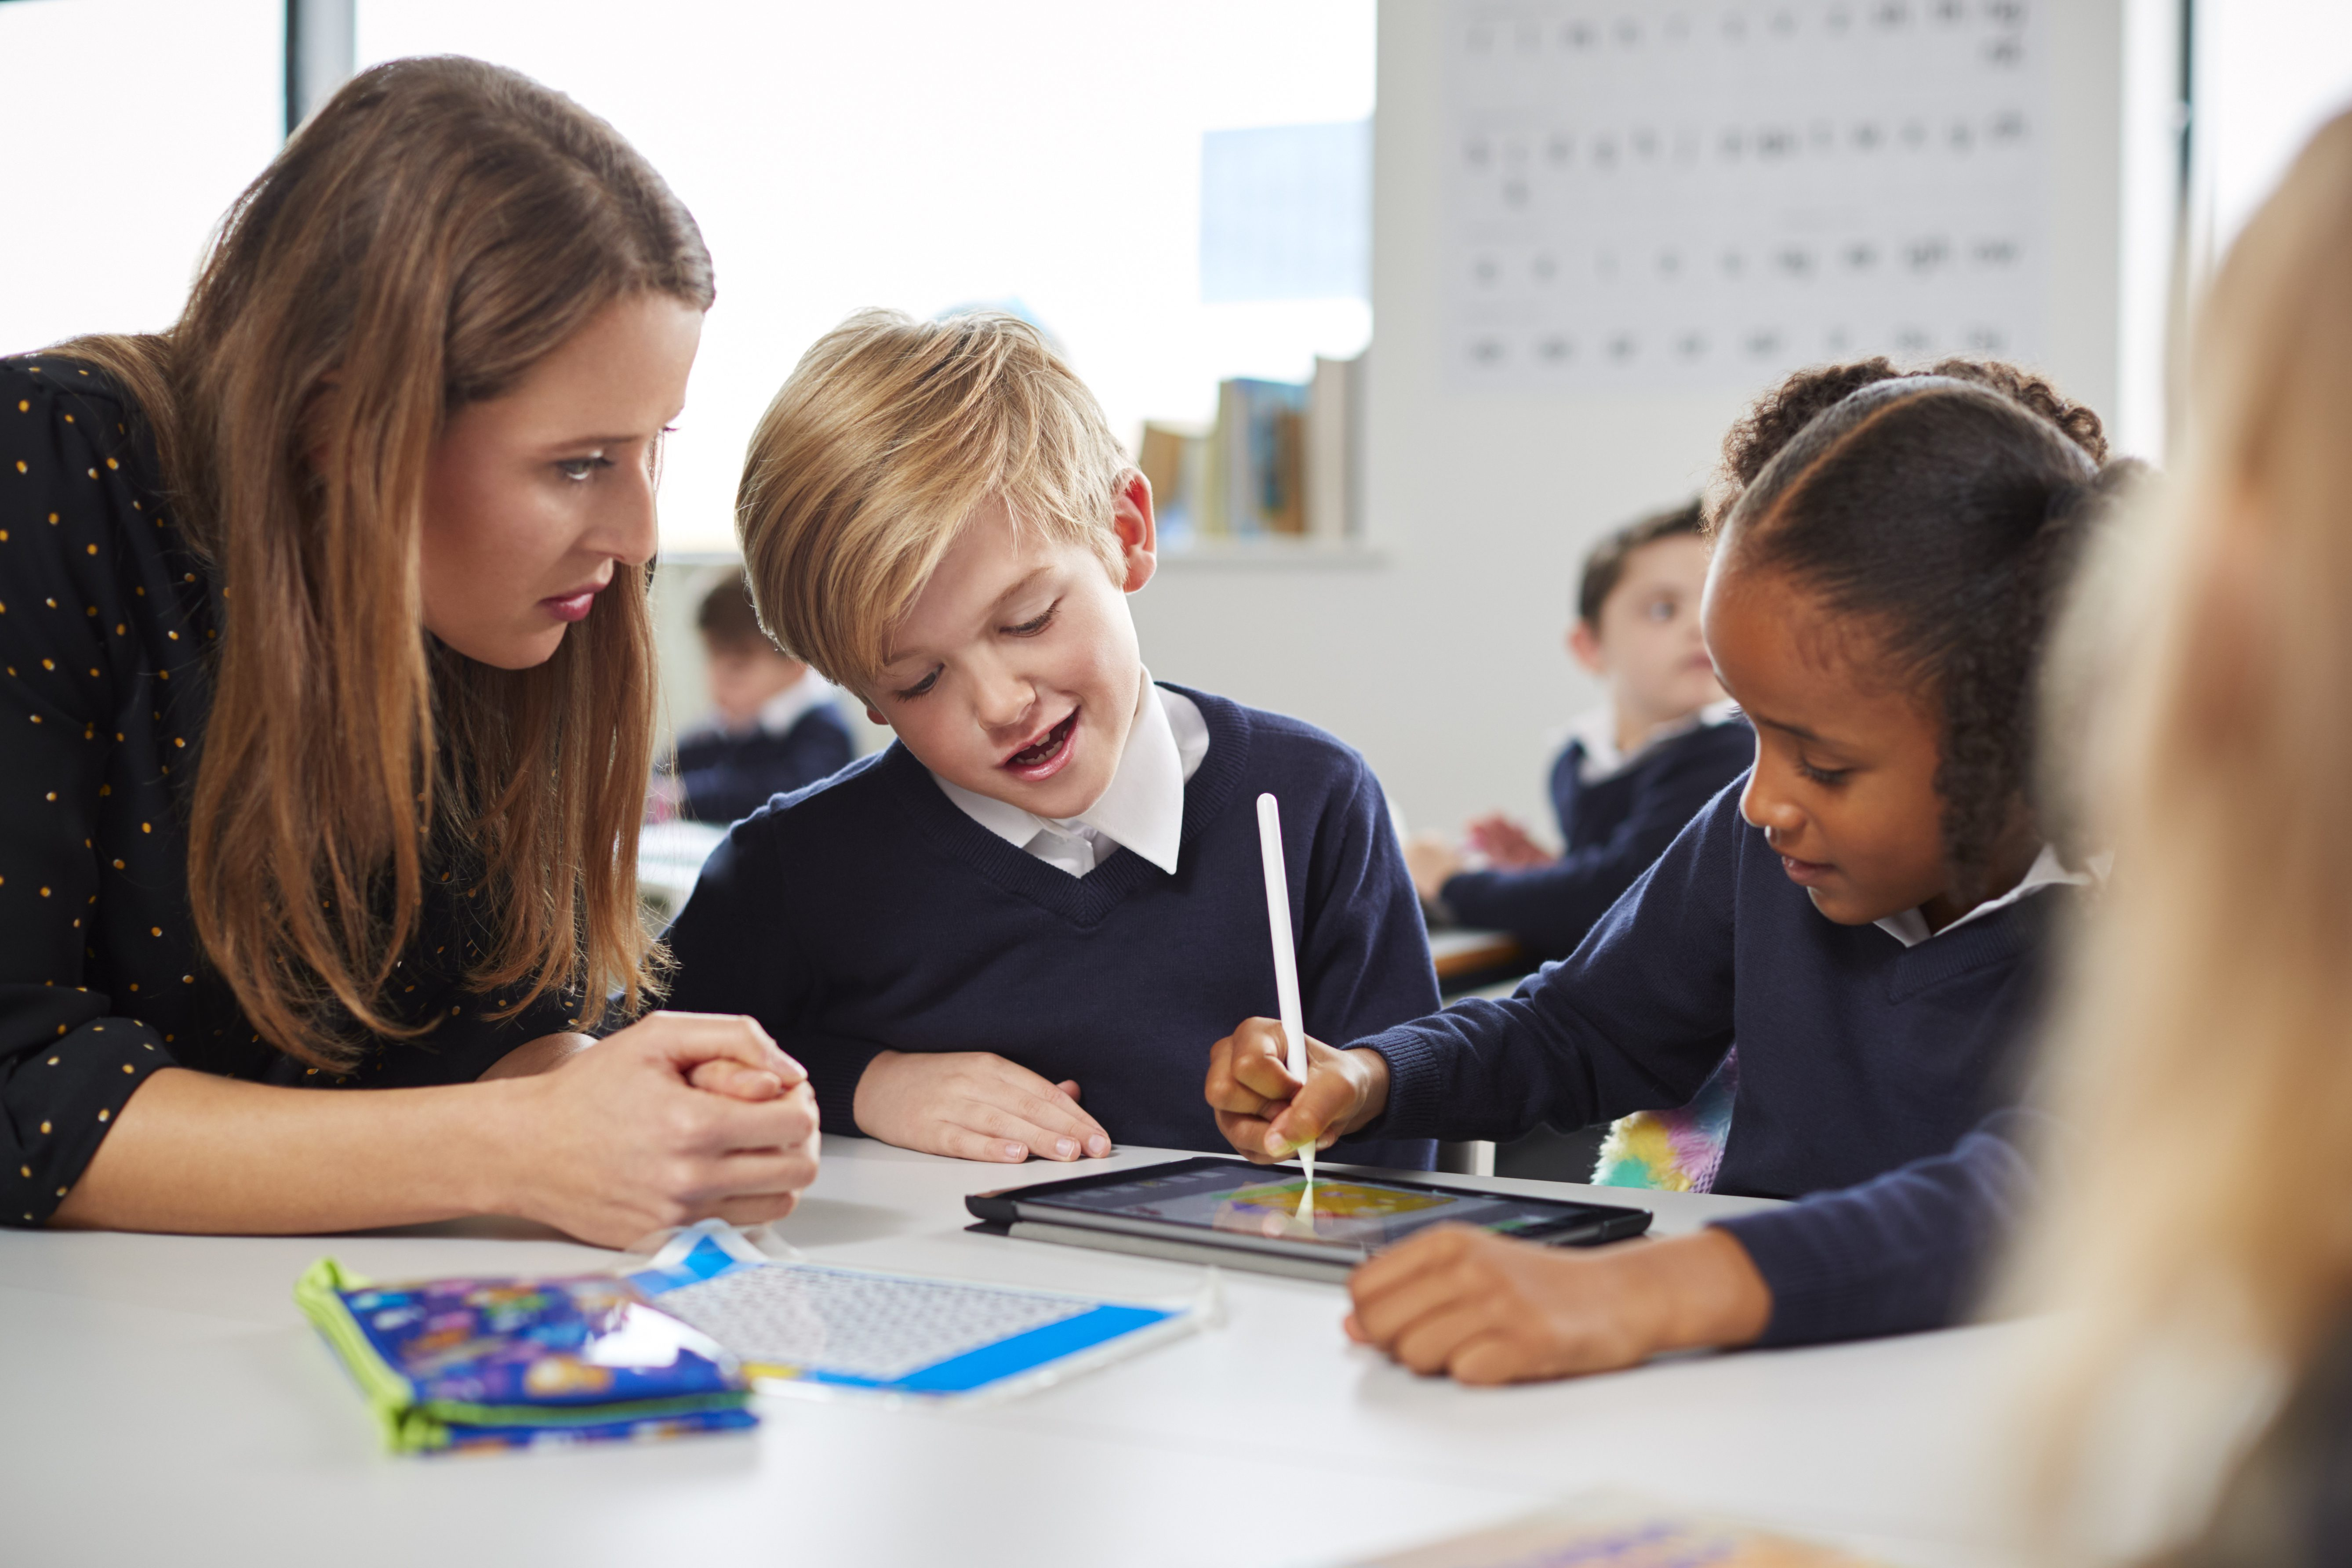 Building an inclusive culture in the classroom: Discovery Education launches new professional learning initiative to support today's teachers